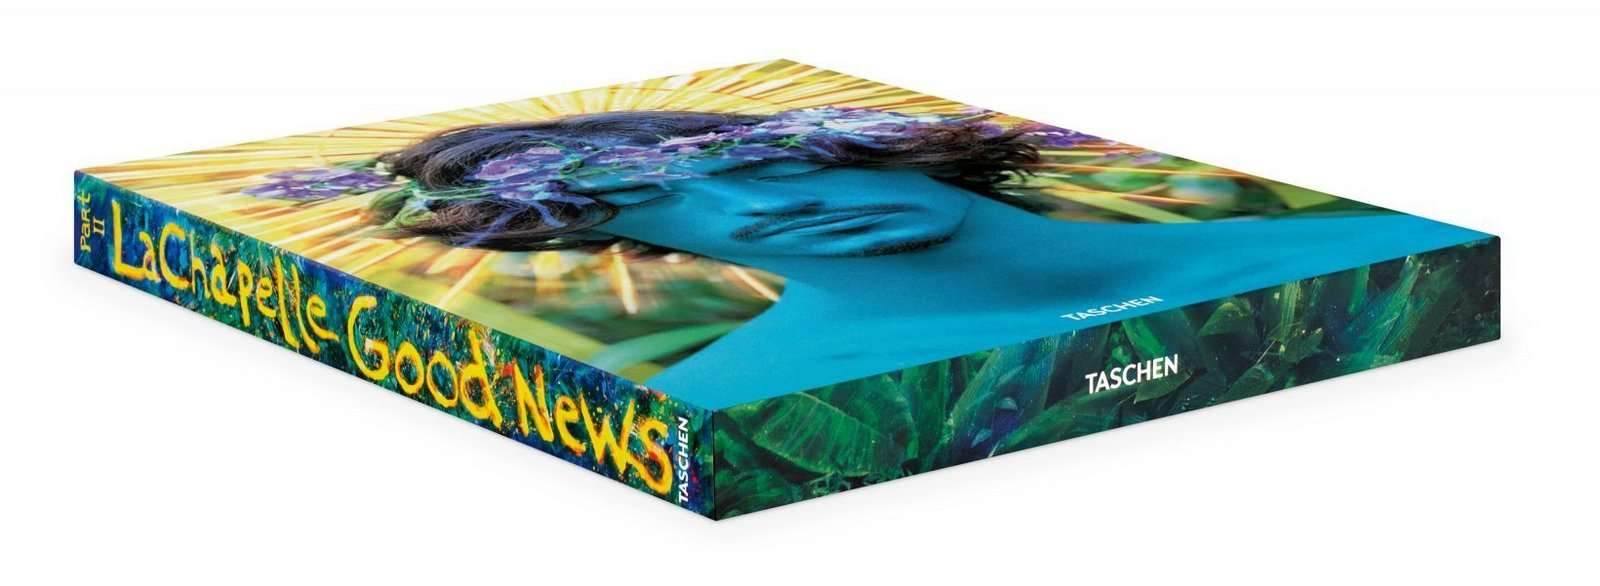 david lachapelle good news